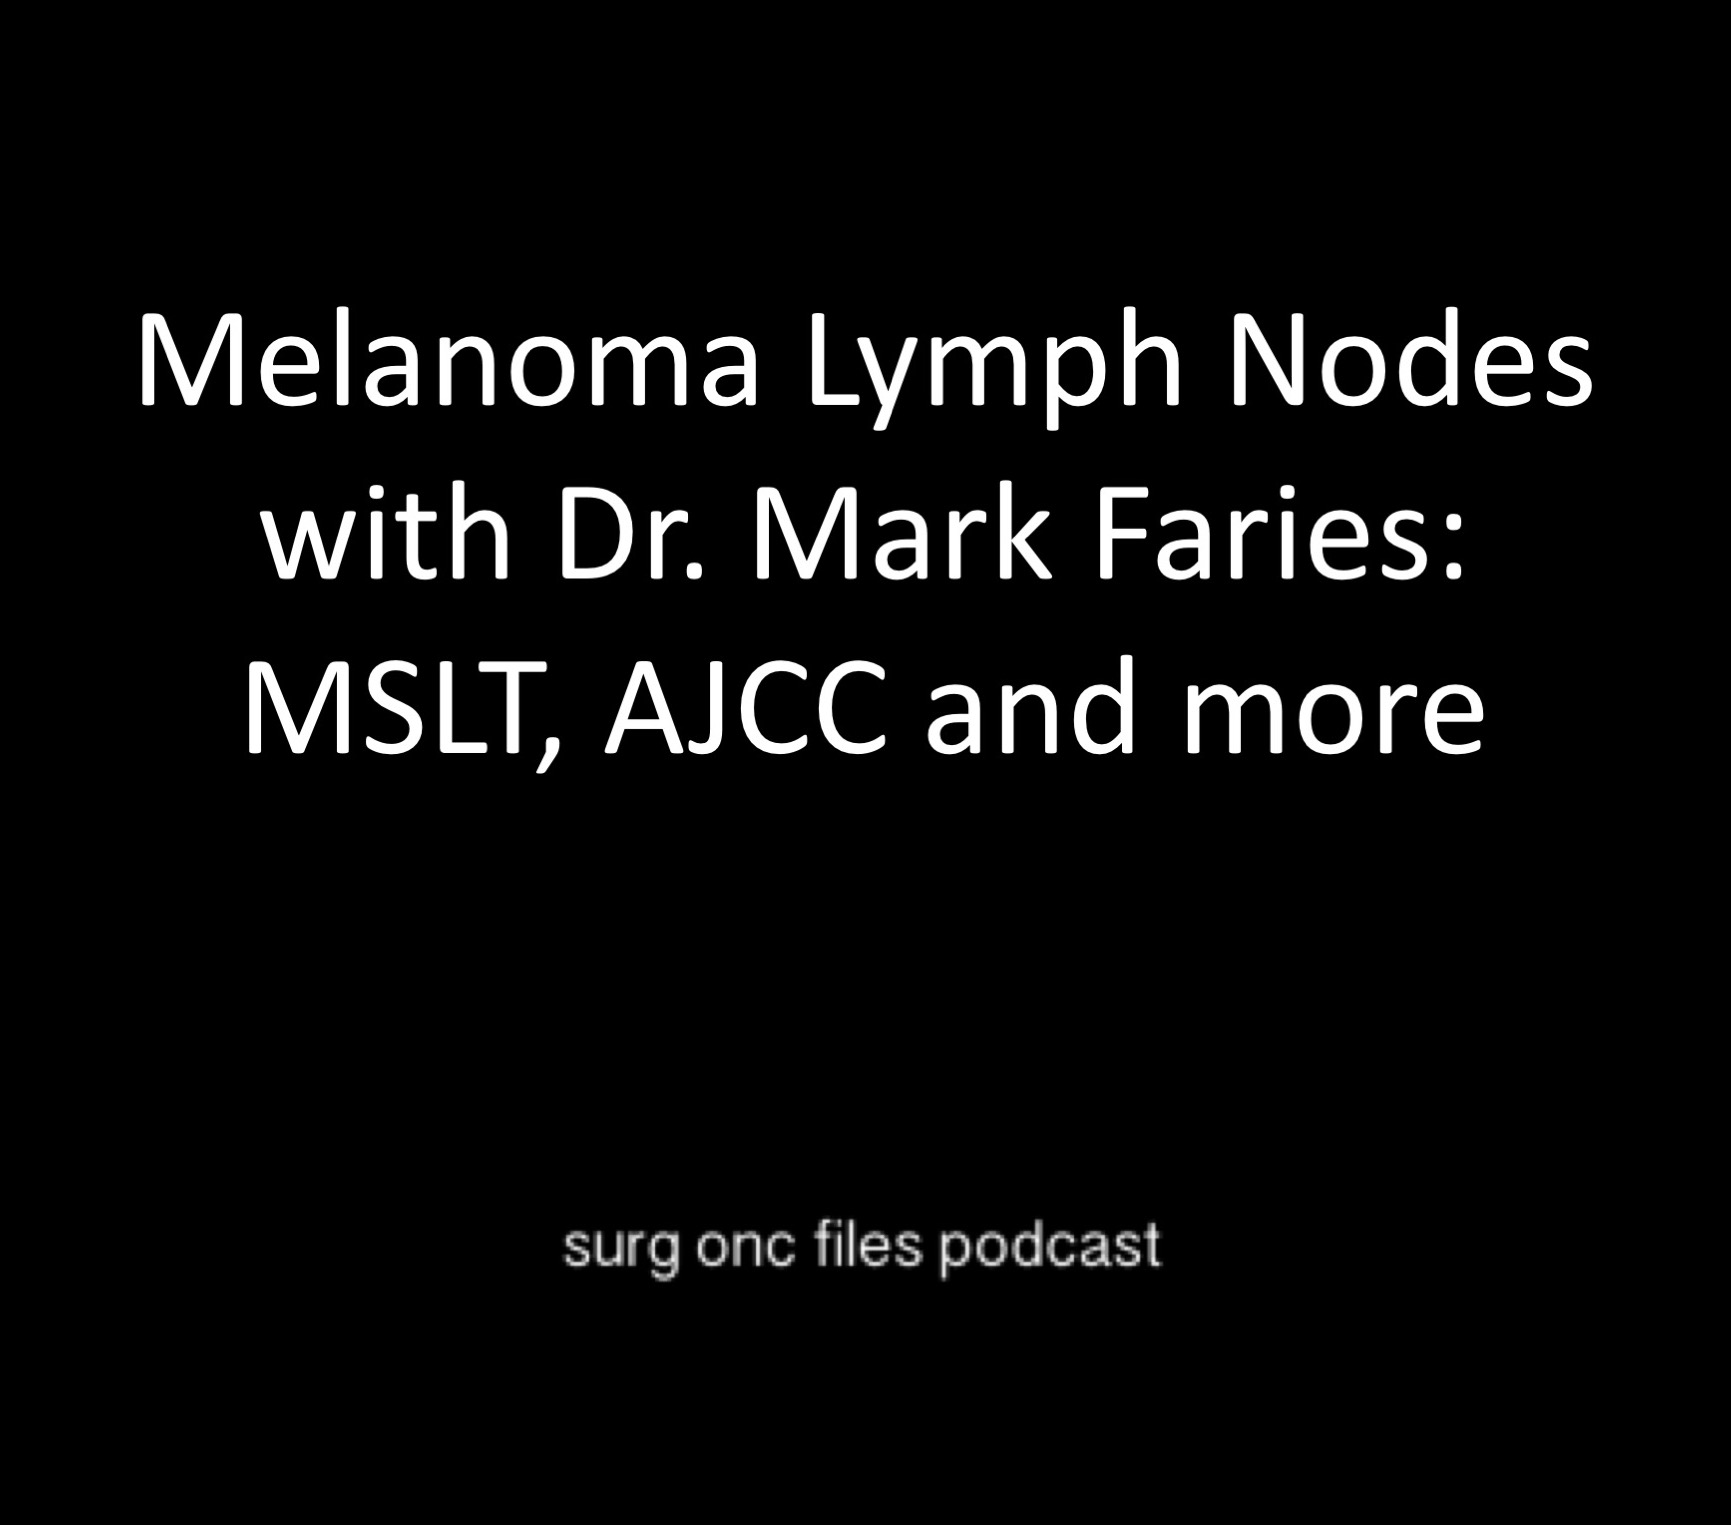 Melanoma Lymph Nodes with Dr. Mark Faries